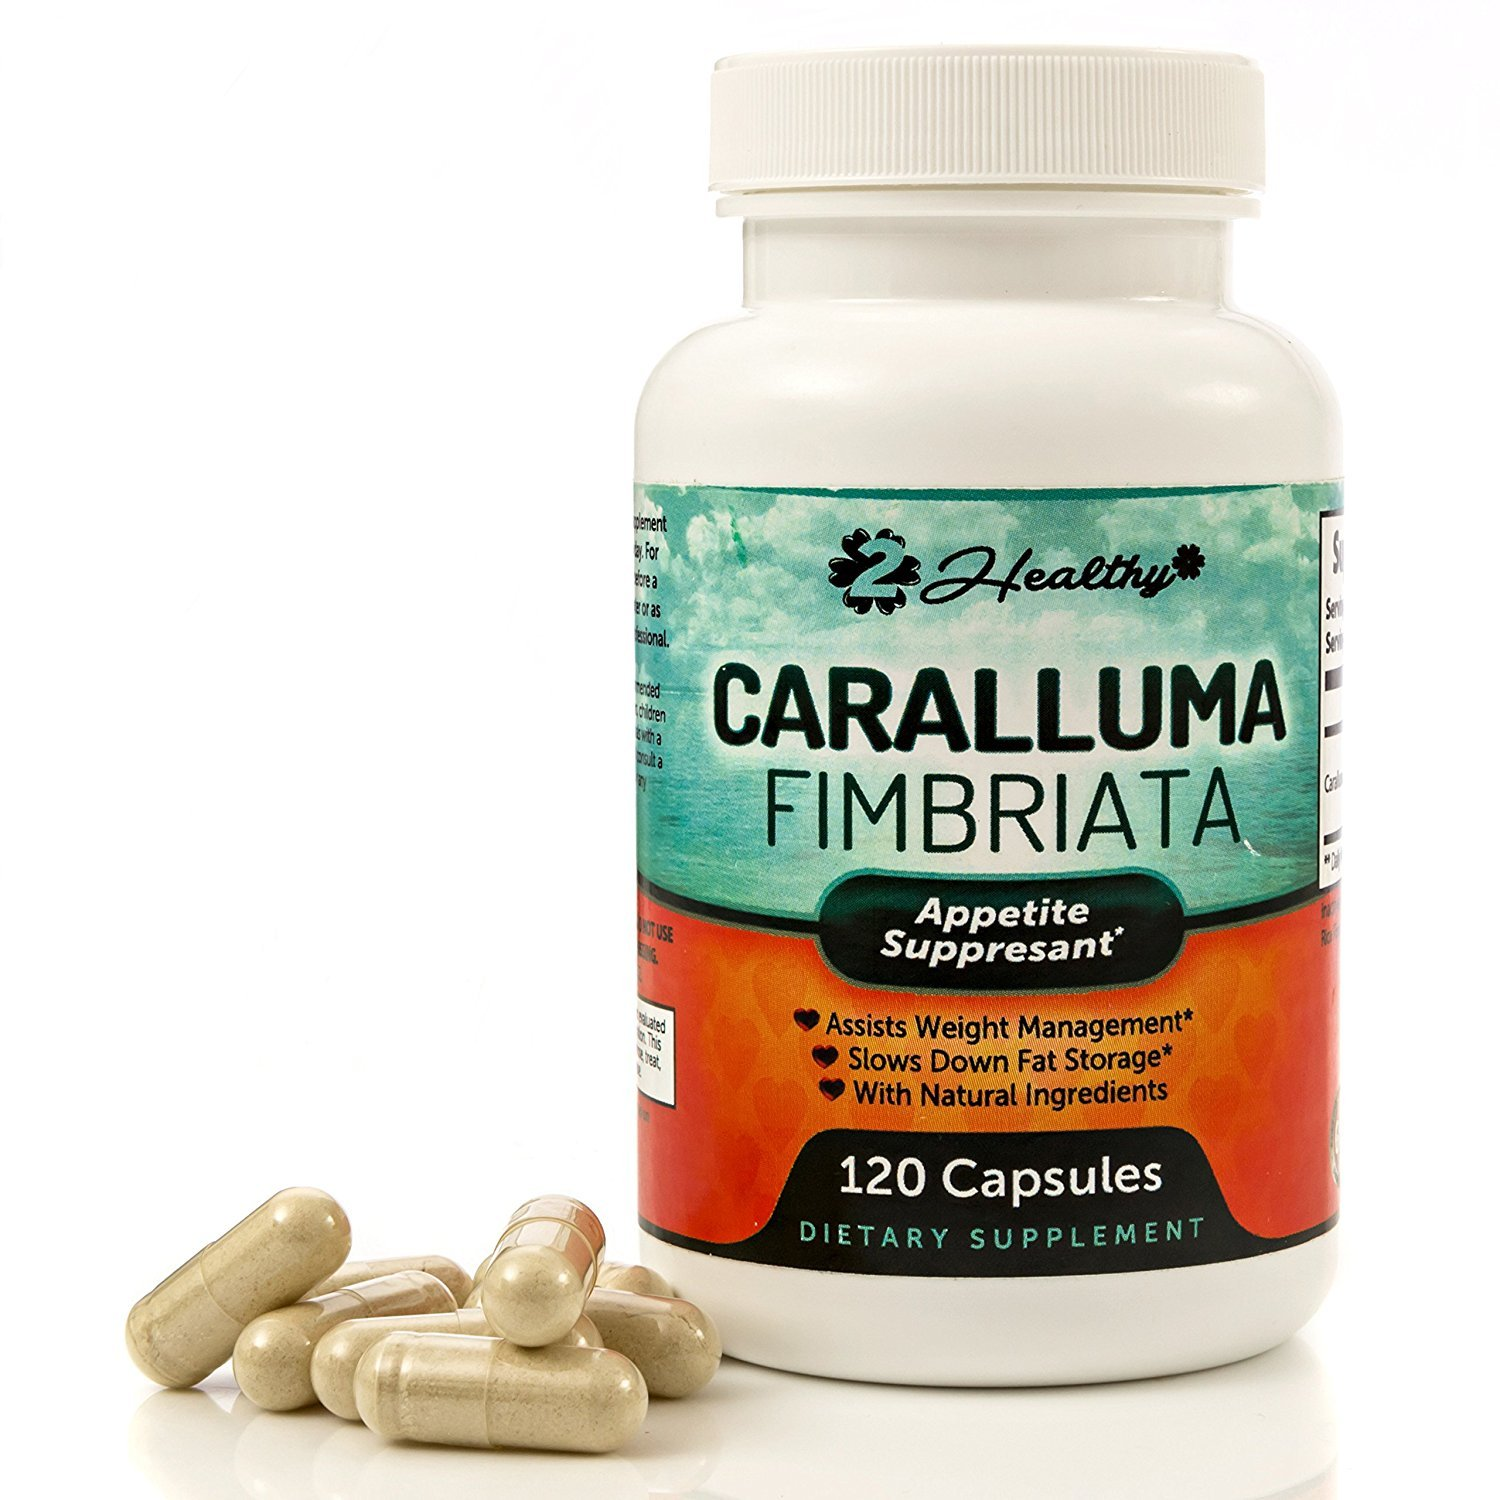 Pure Caralluma Fimbriata Extract 1200mg (120 Capsules) - Weight Loss Management Supplement & Keto Diet Pills, Natural Appetite Suppressant Support for Women & Men